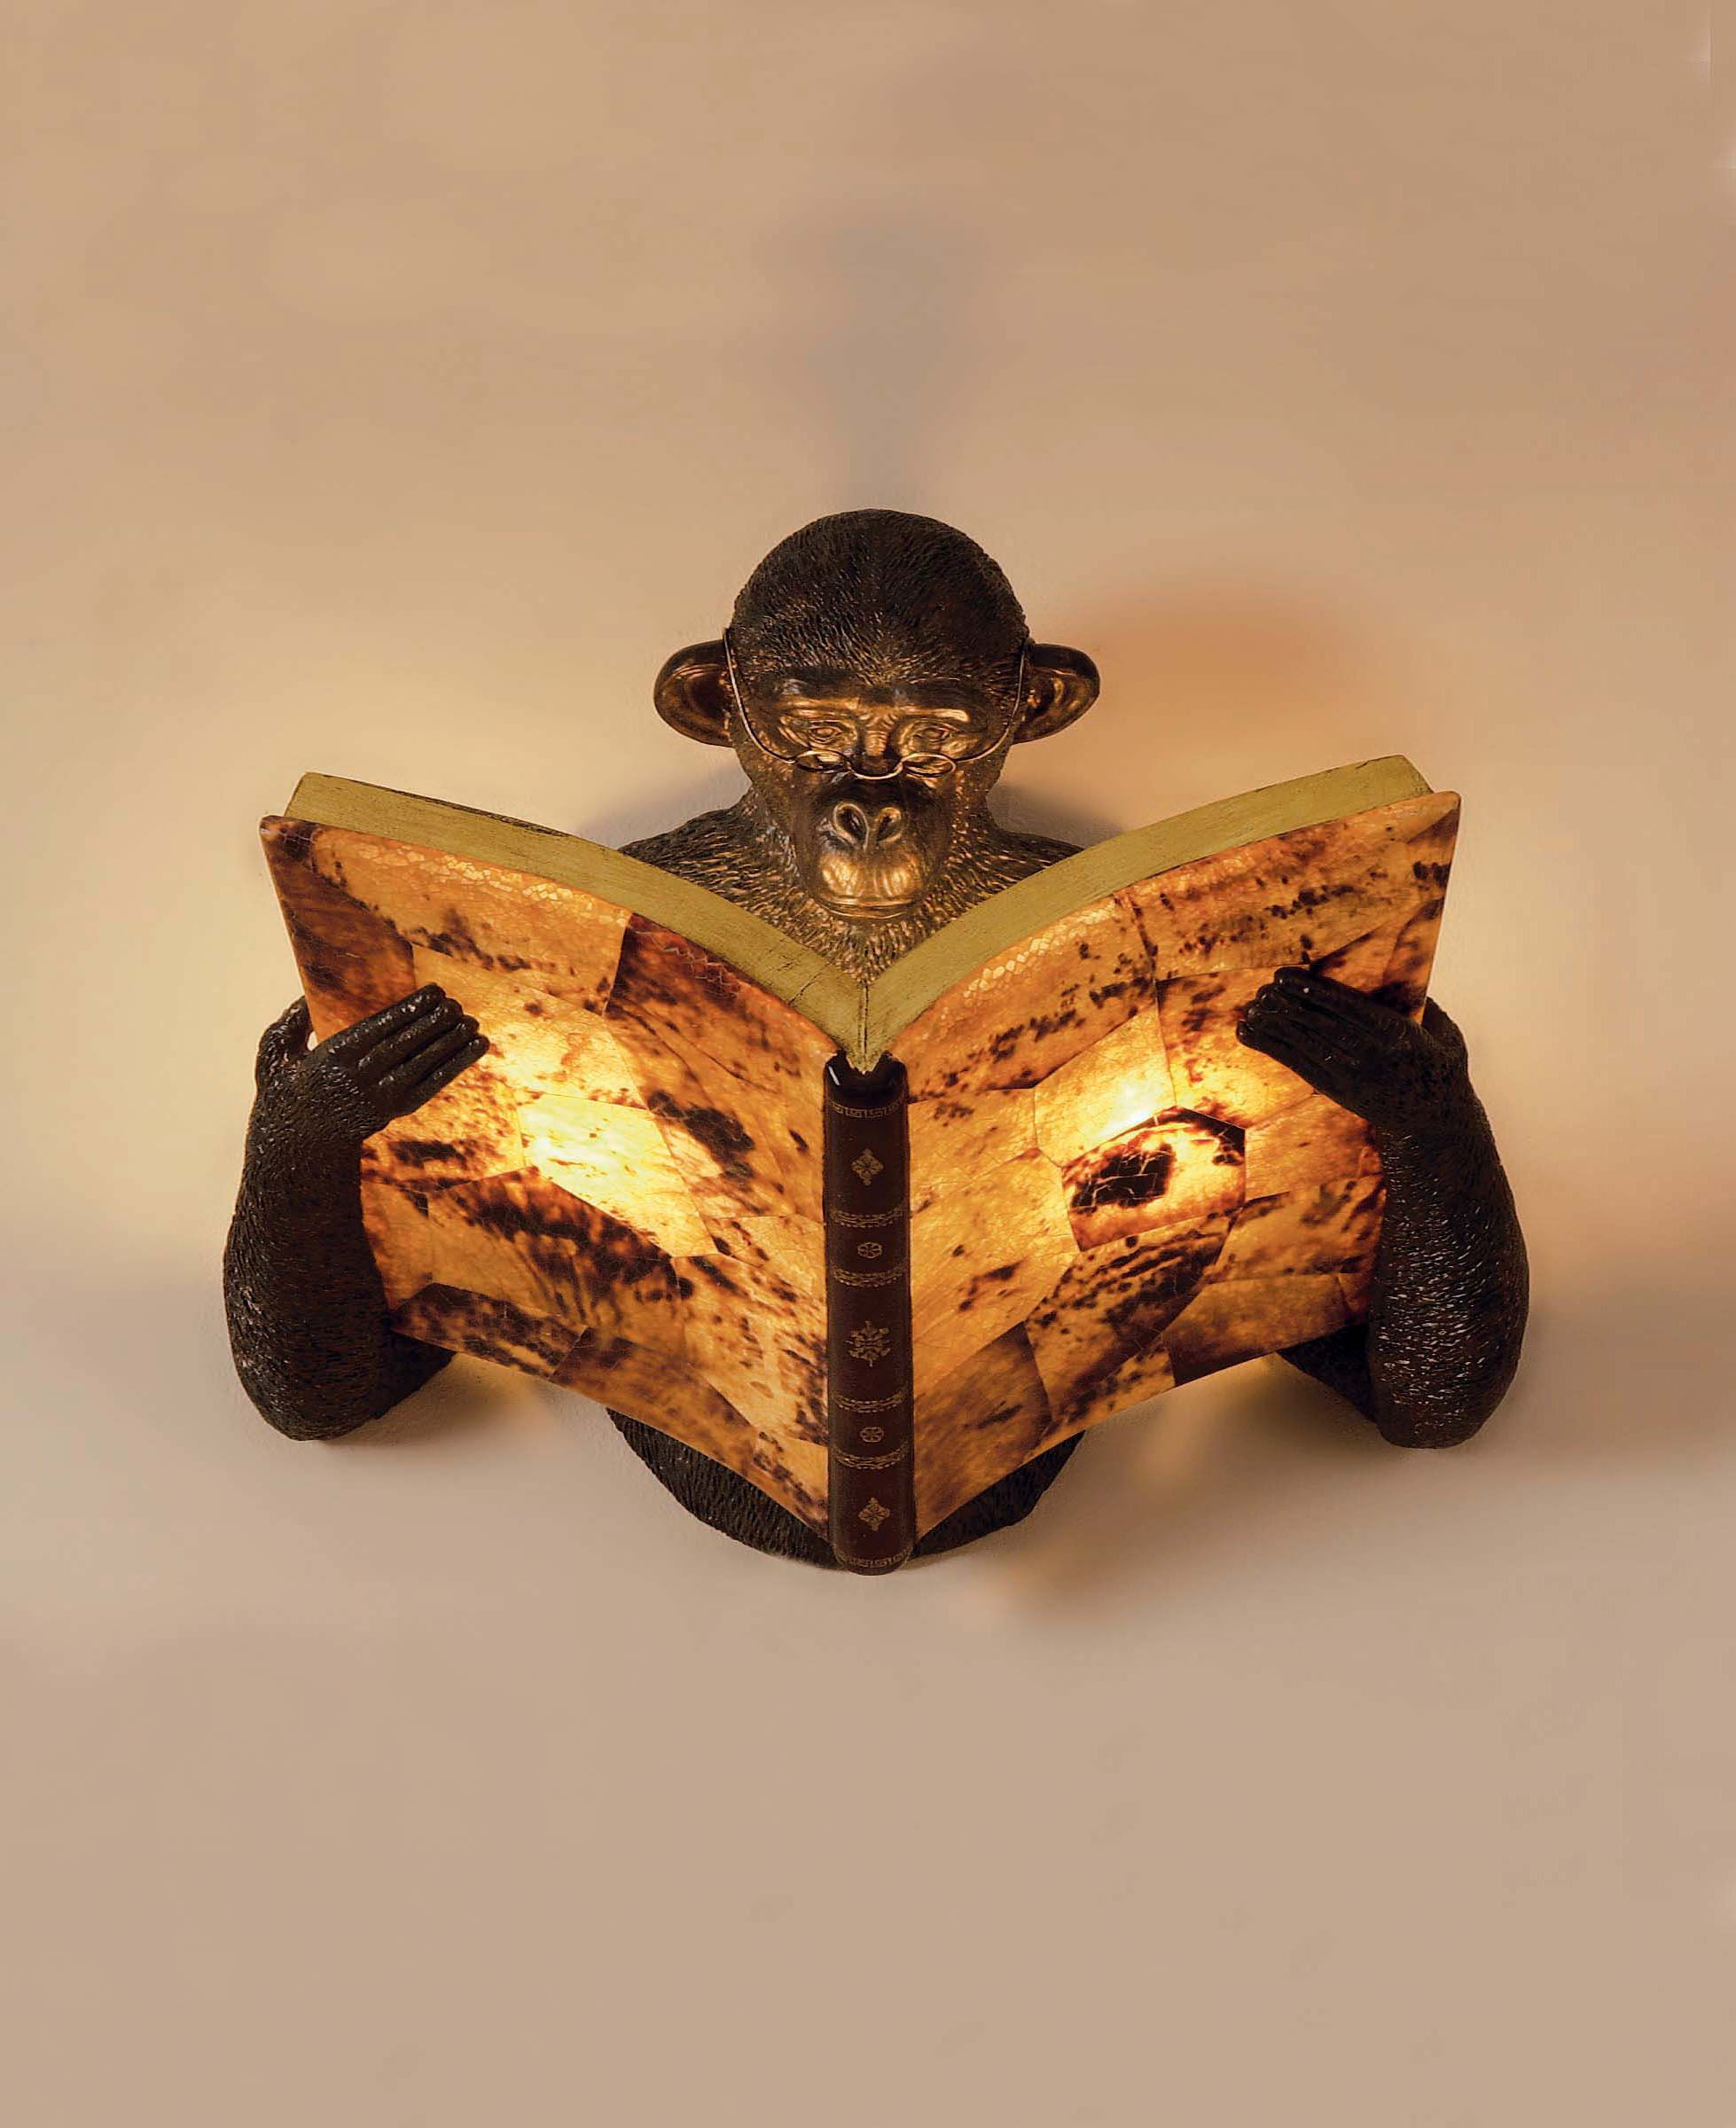 This Monkey Quot Reading A Book Quot Sconce Is A Great Expression